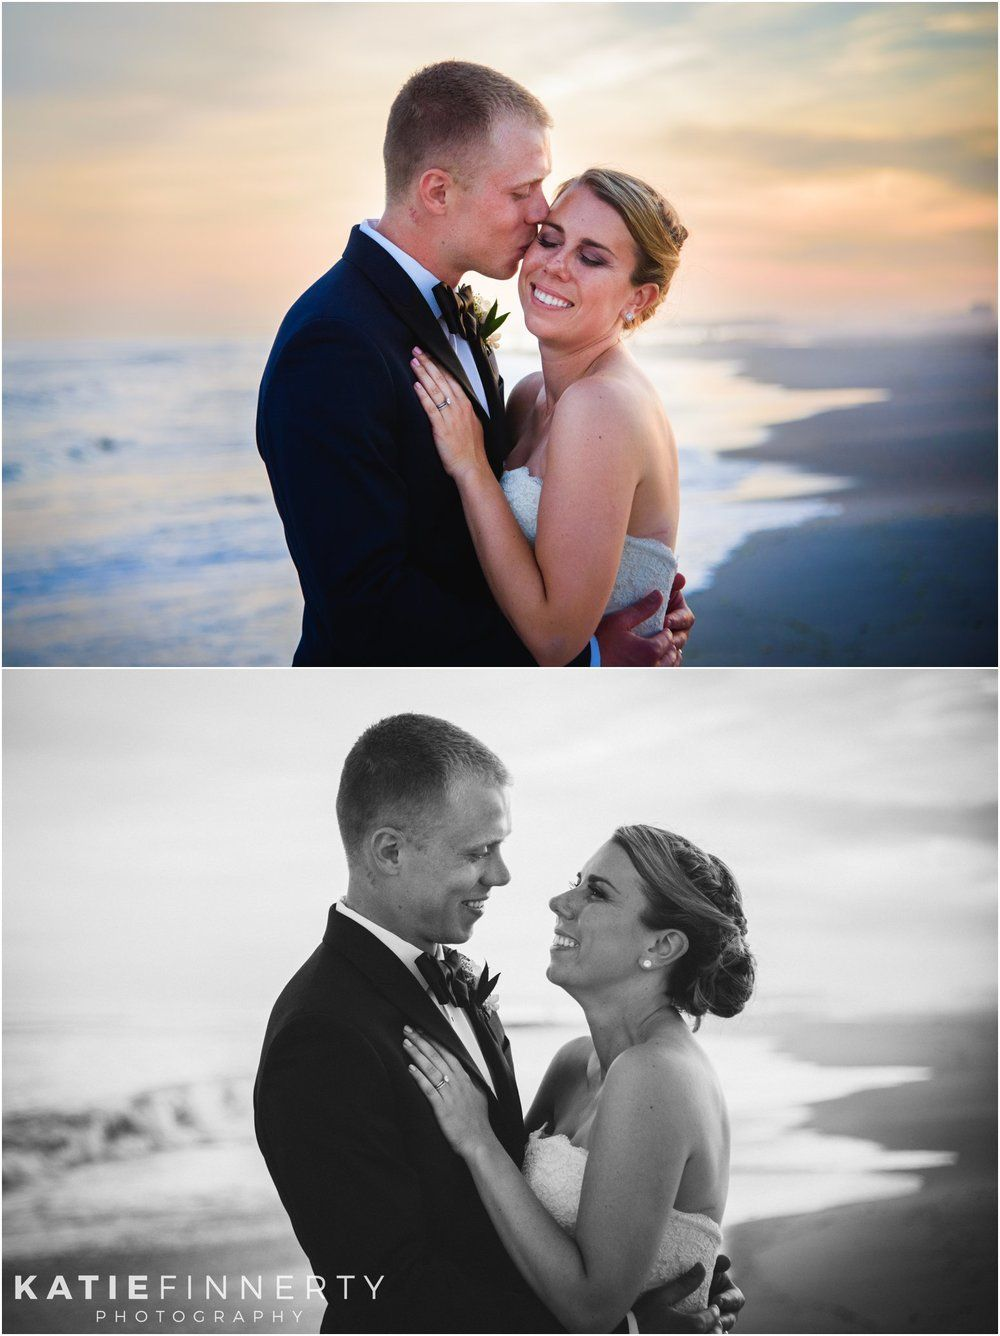 Bride And Groom Photos At Sunset During Long Island Beach Wedding Nautical Details For